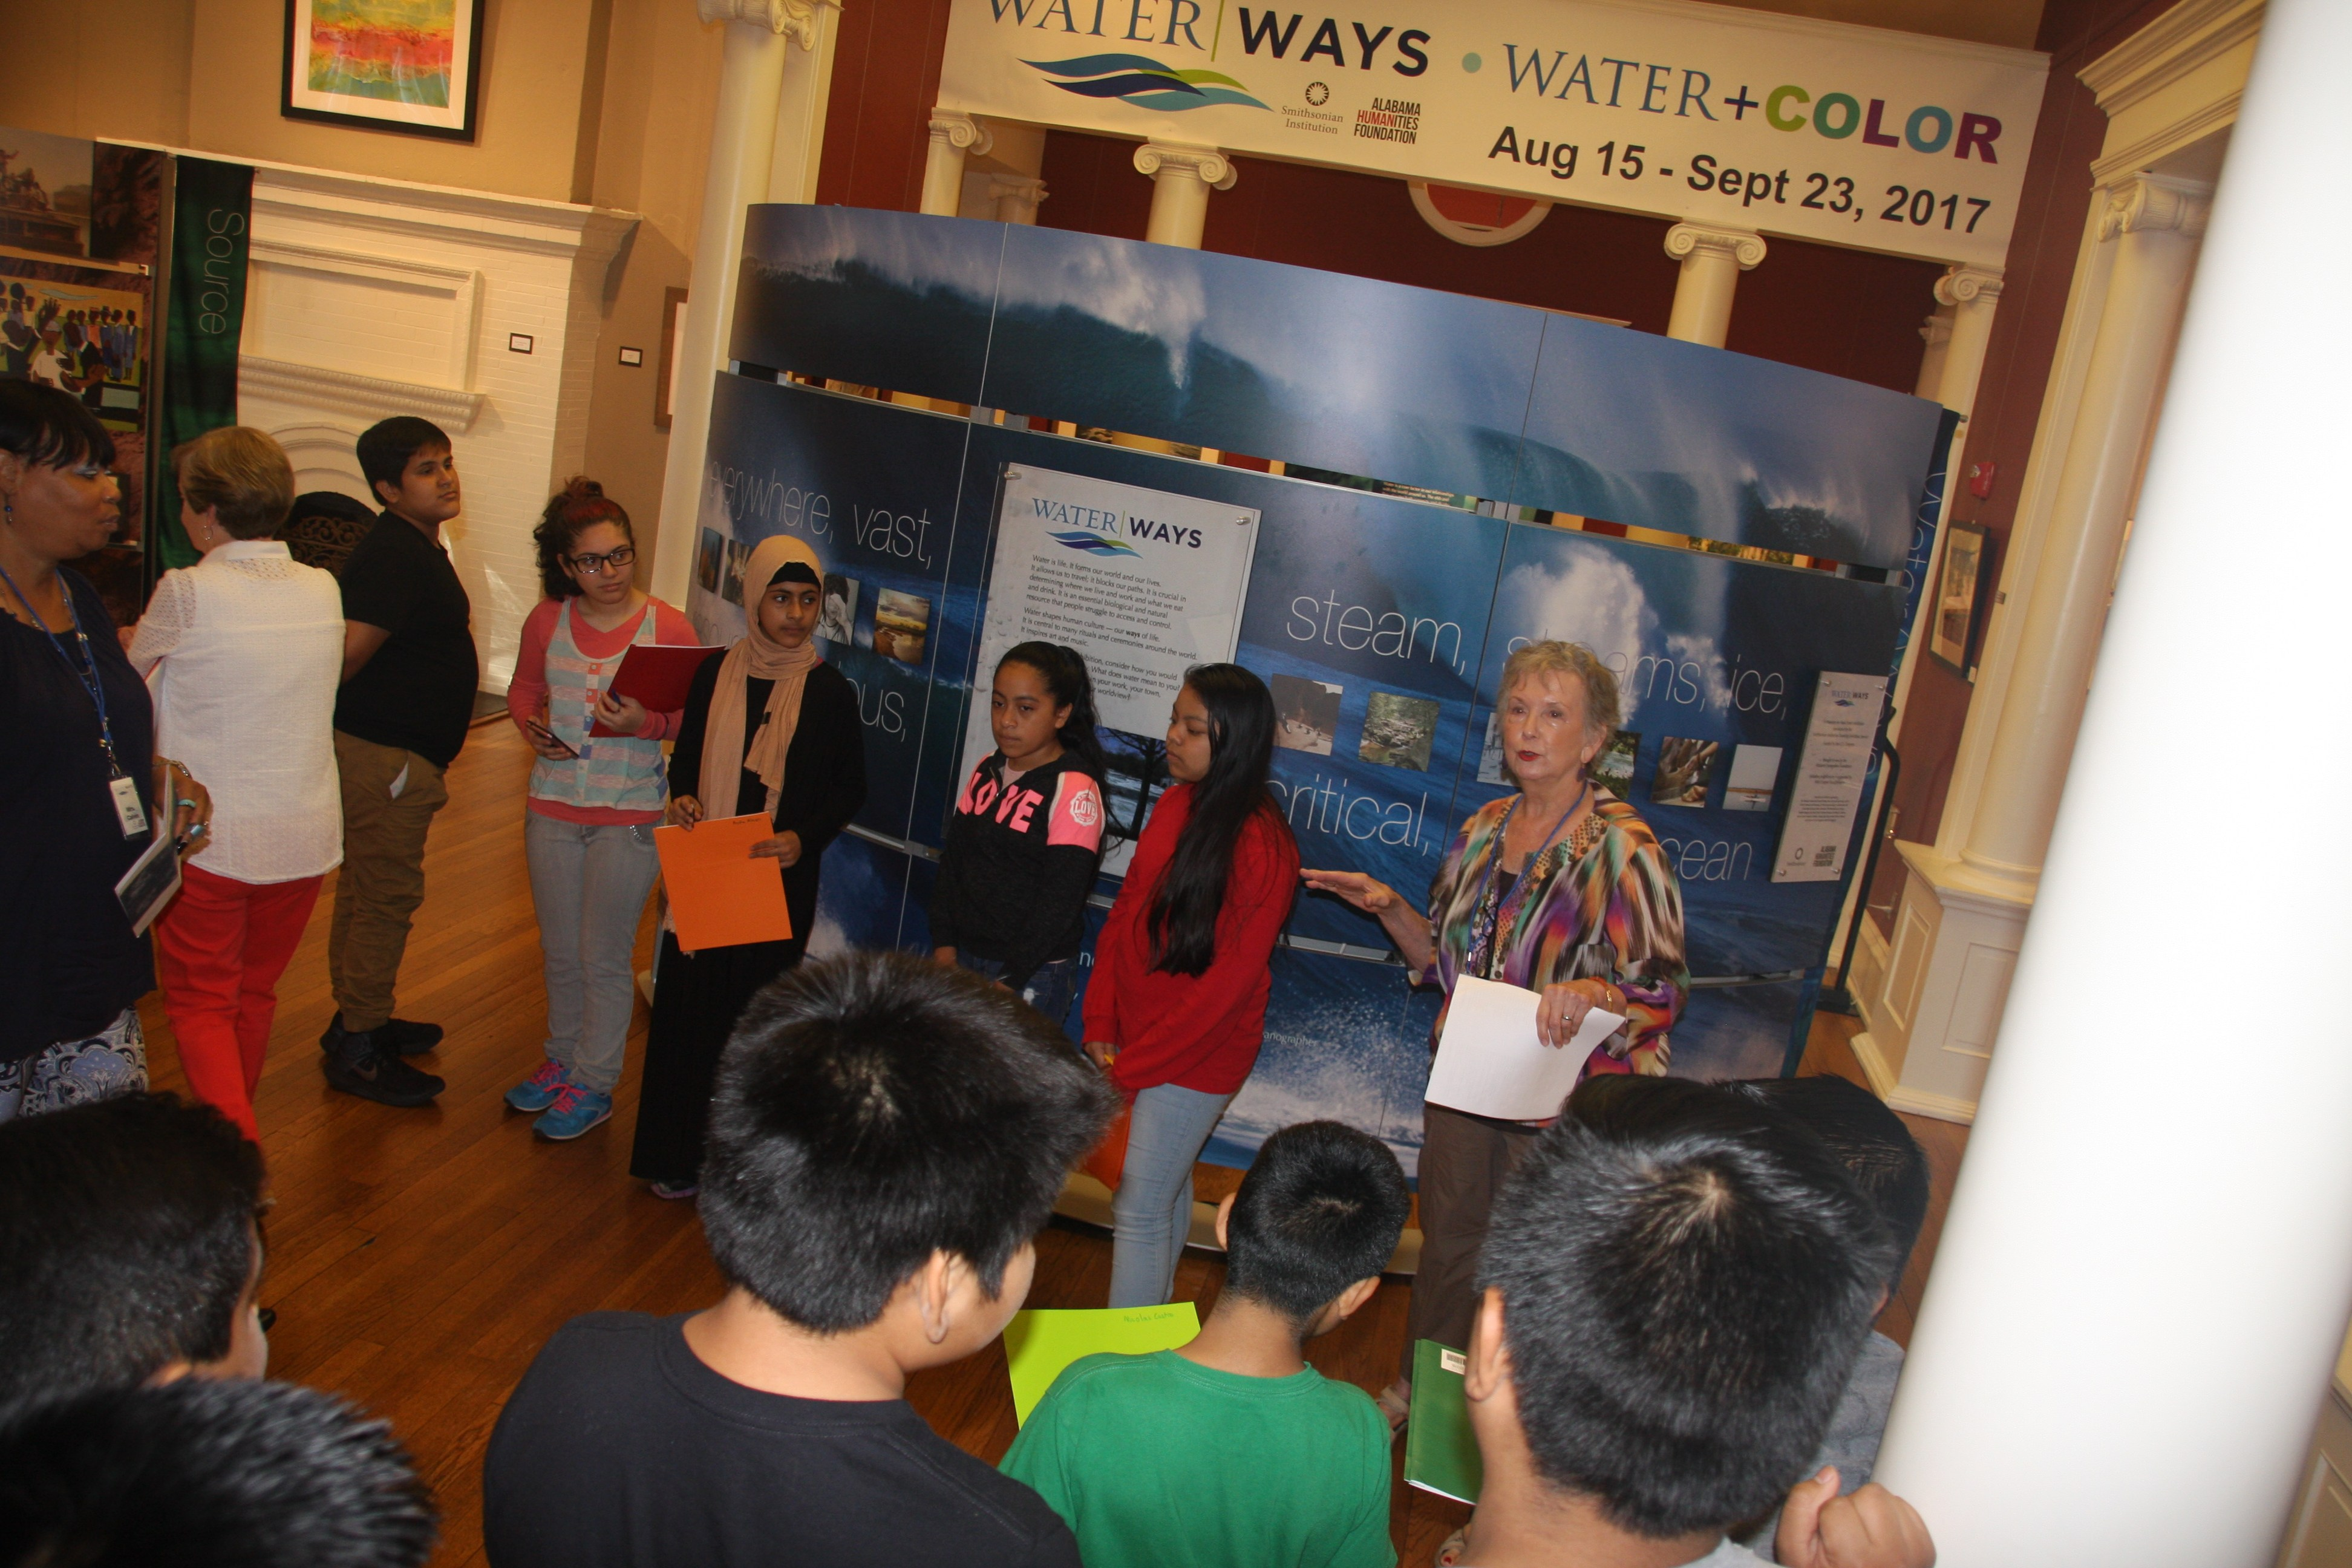 Seventh graders attentively listen to the docent explain one of the kiosks of the exhibit.